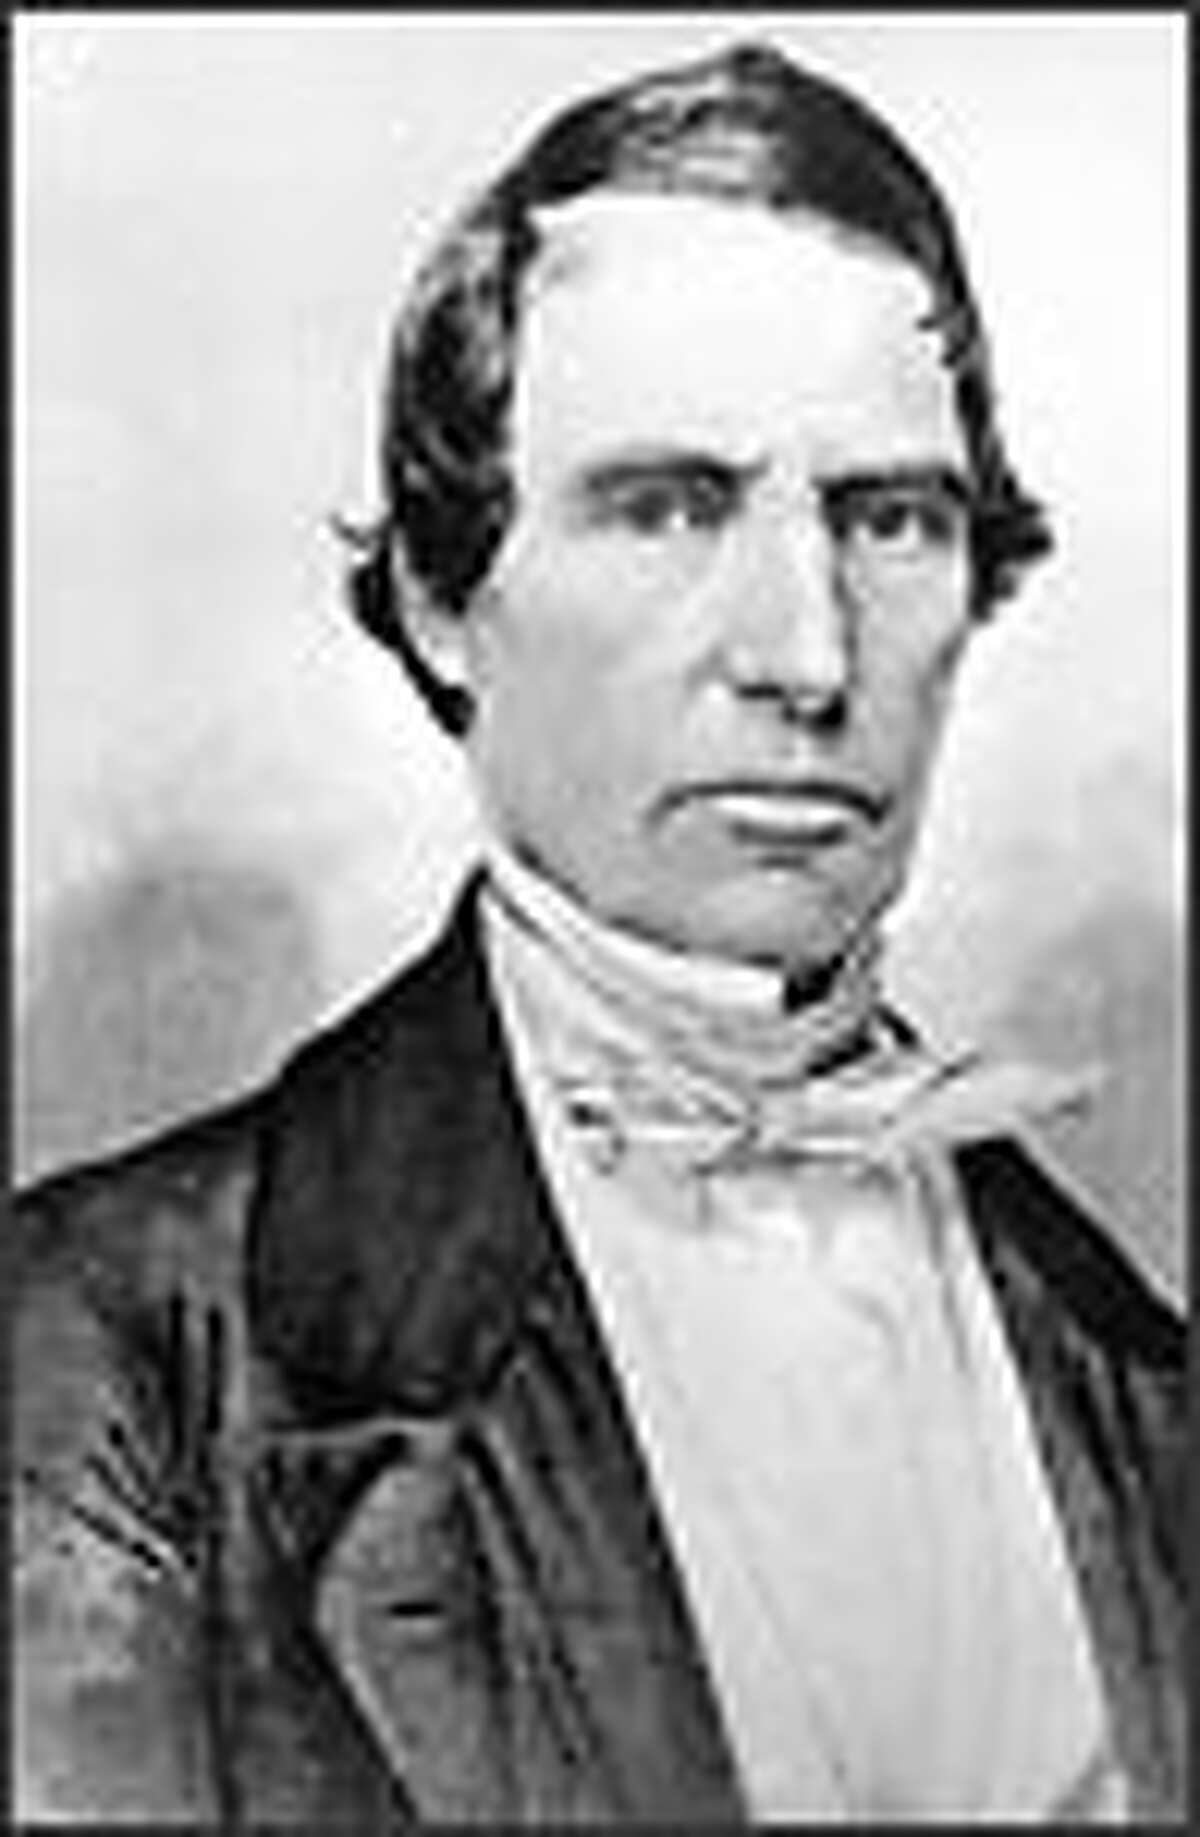 Oregon's Territorial Legislature named the county after Vice President-elect William Rufus Devane King, likely to curry favor with the administration.